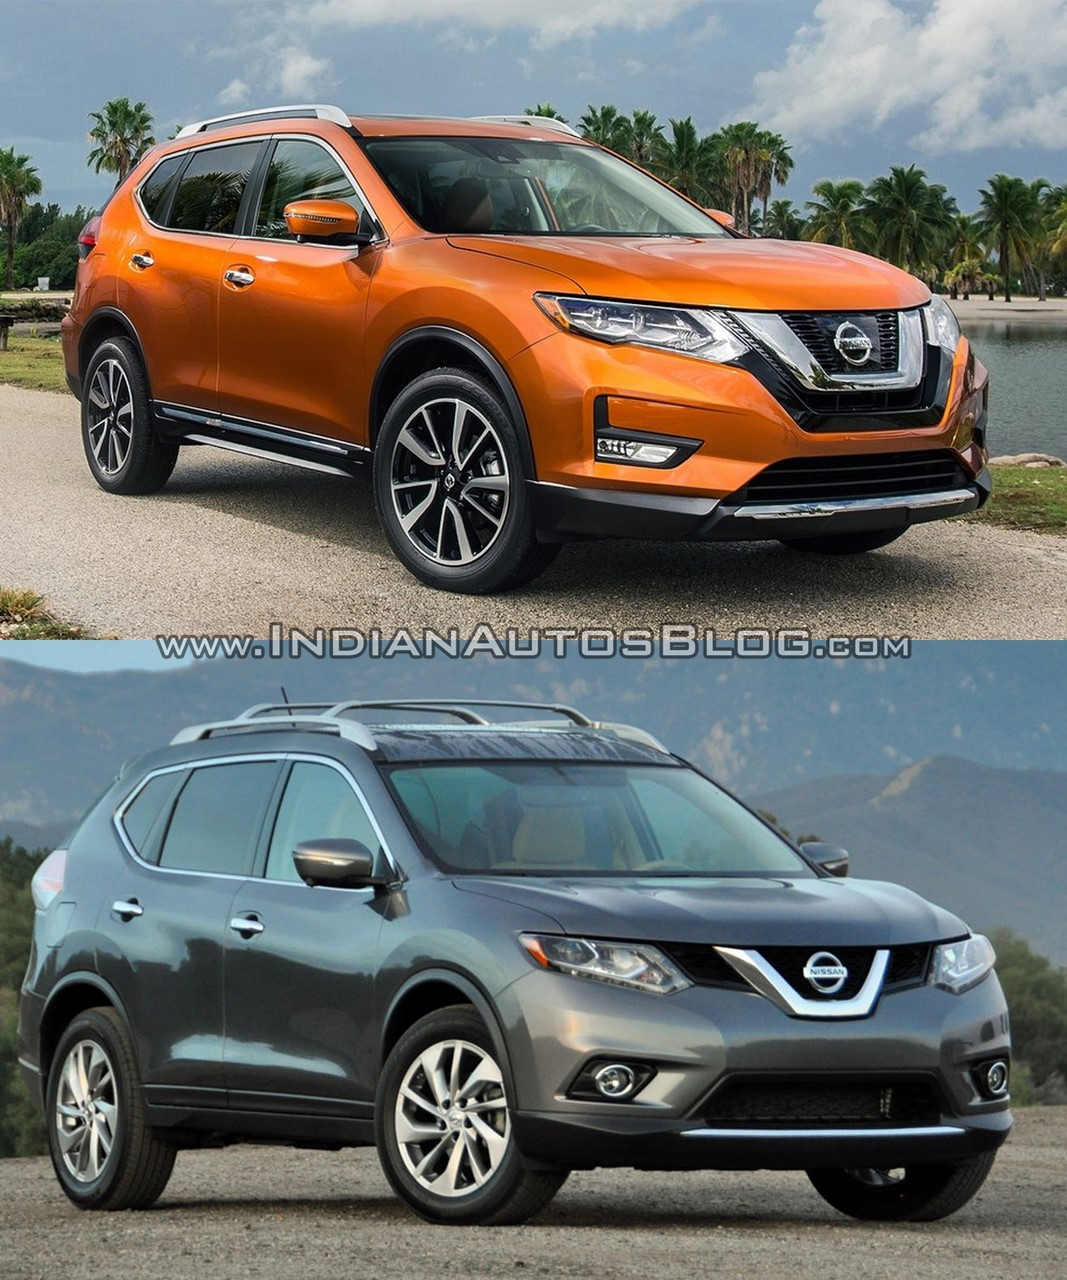 2017 Nissan Rogue (facelift) vs. 2014 Nissan Rogue - Image Gallery front three quarters right side